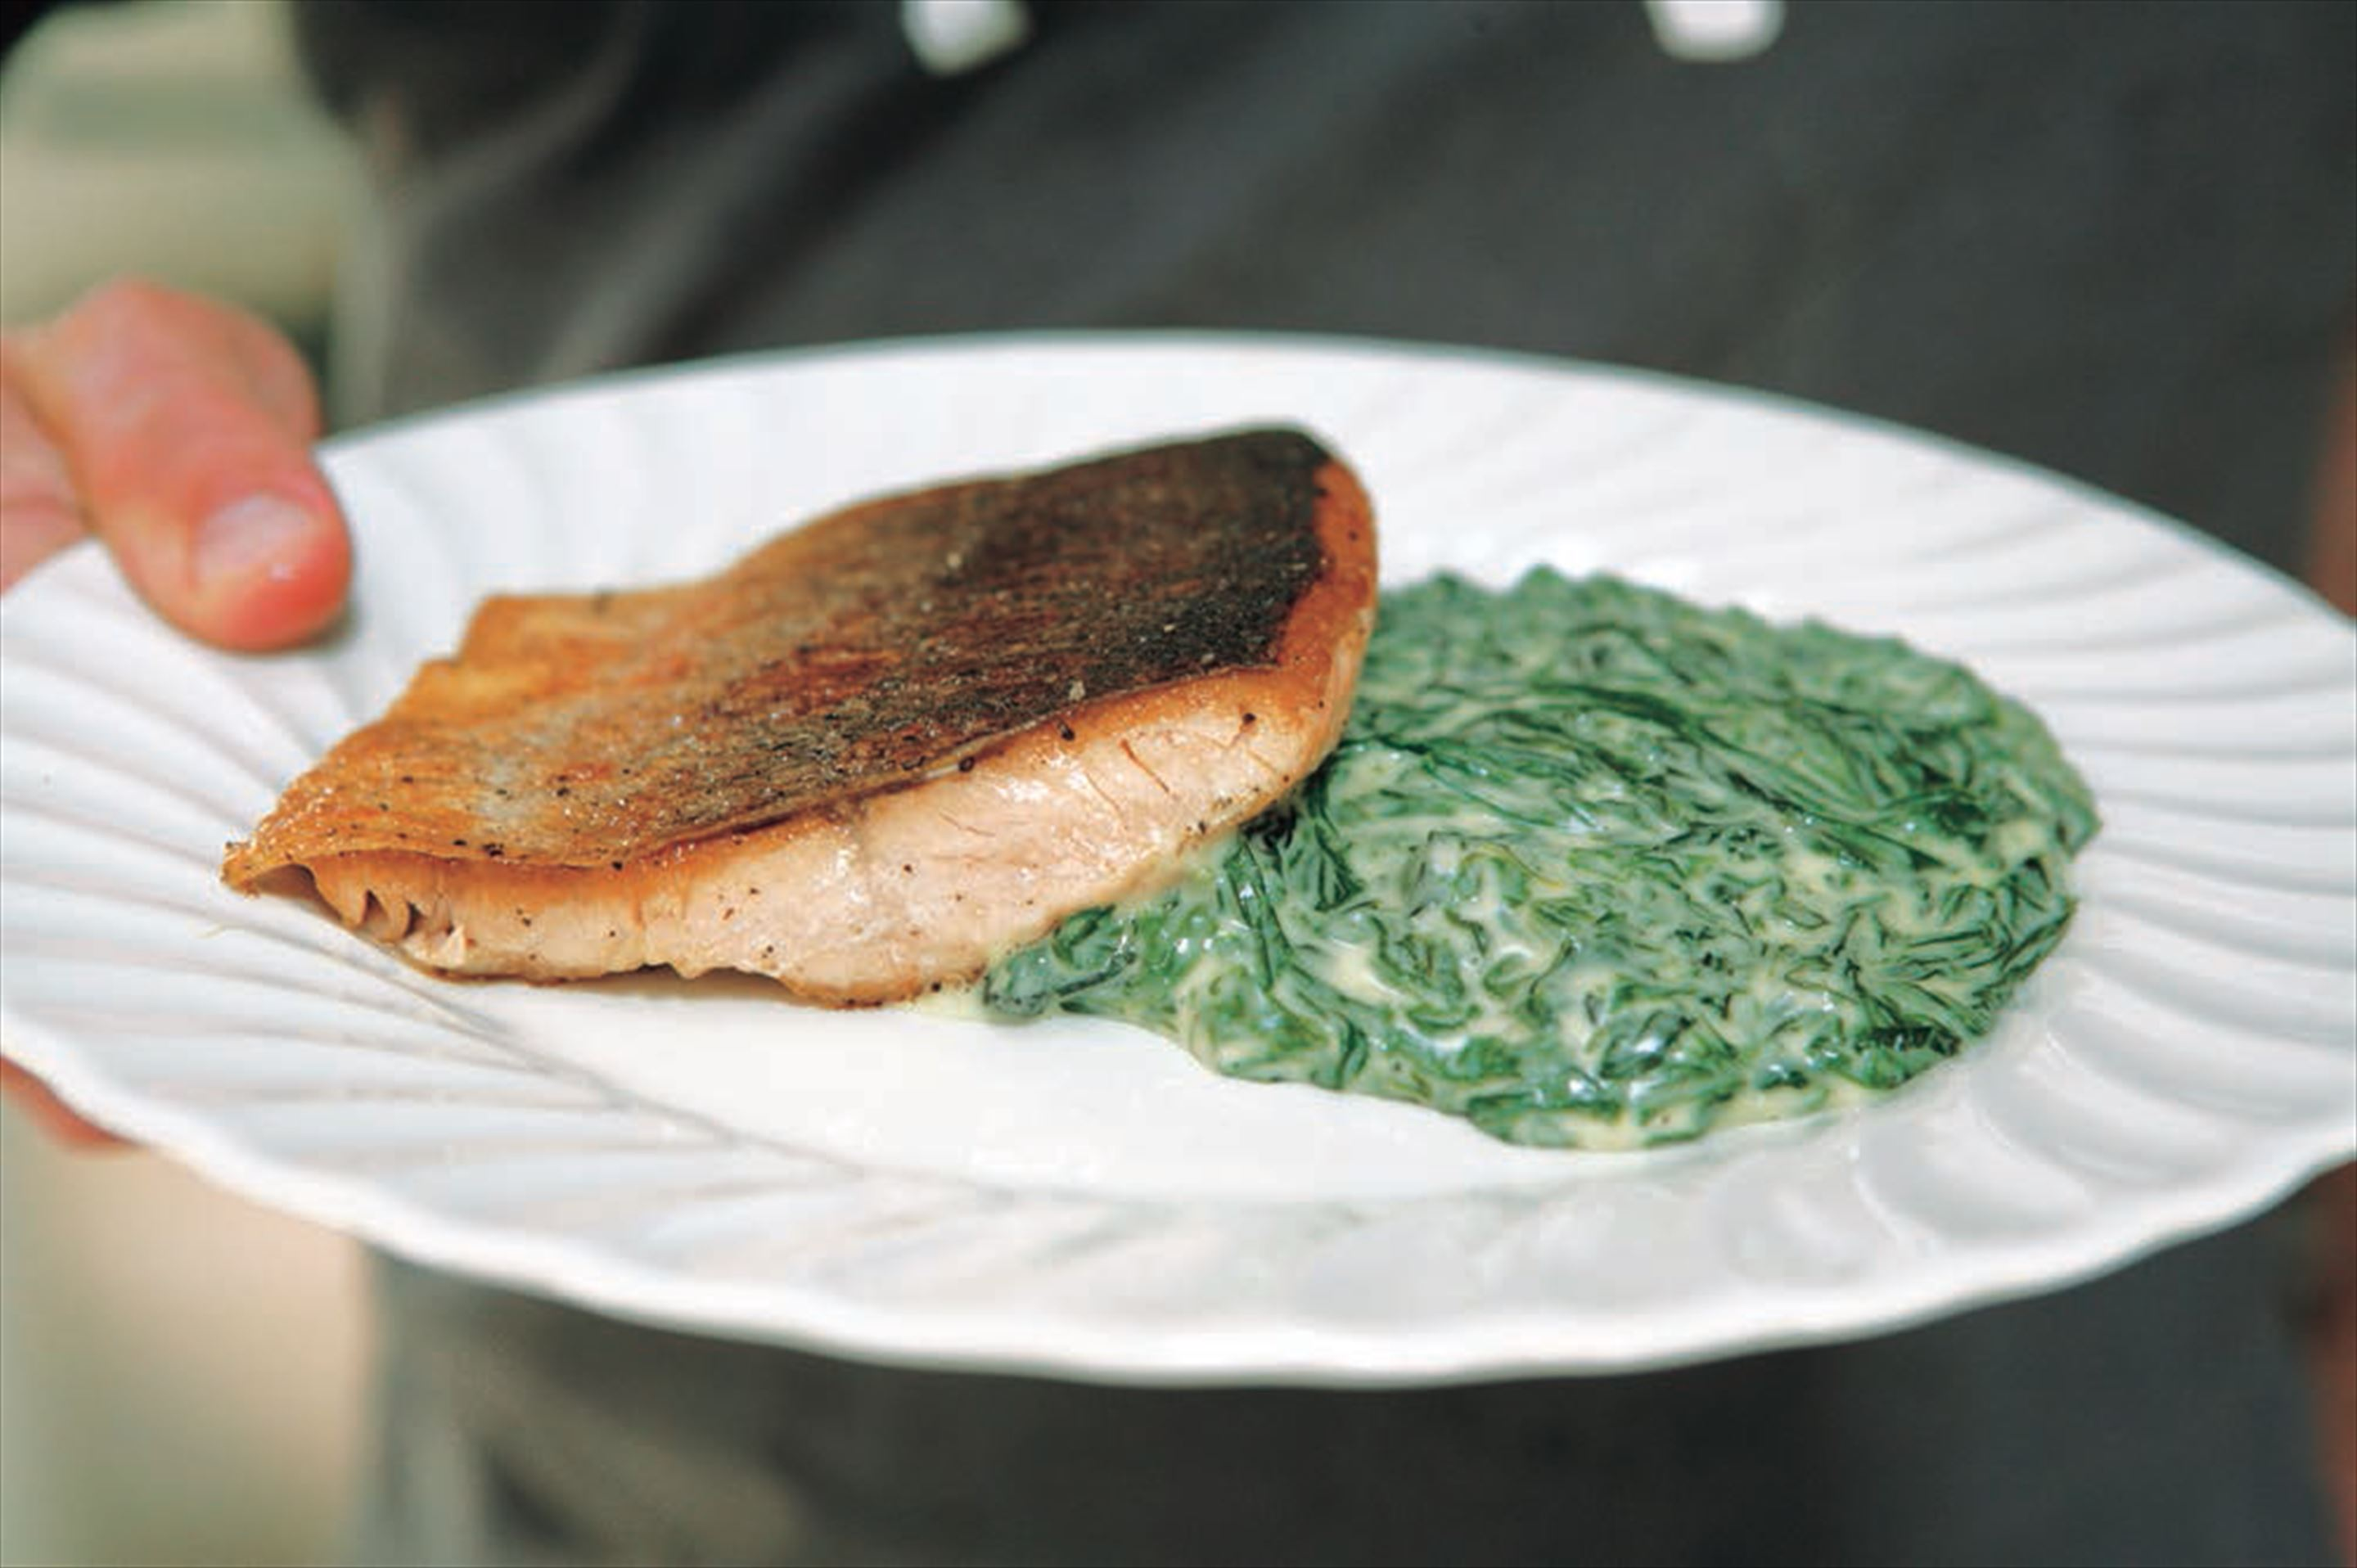 Sea trout fillet with sorrel sauce